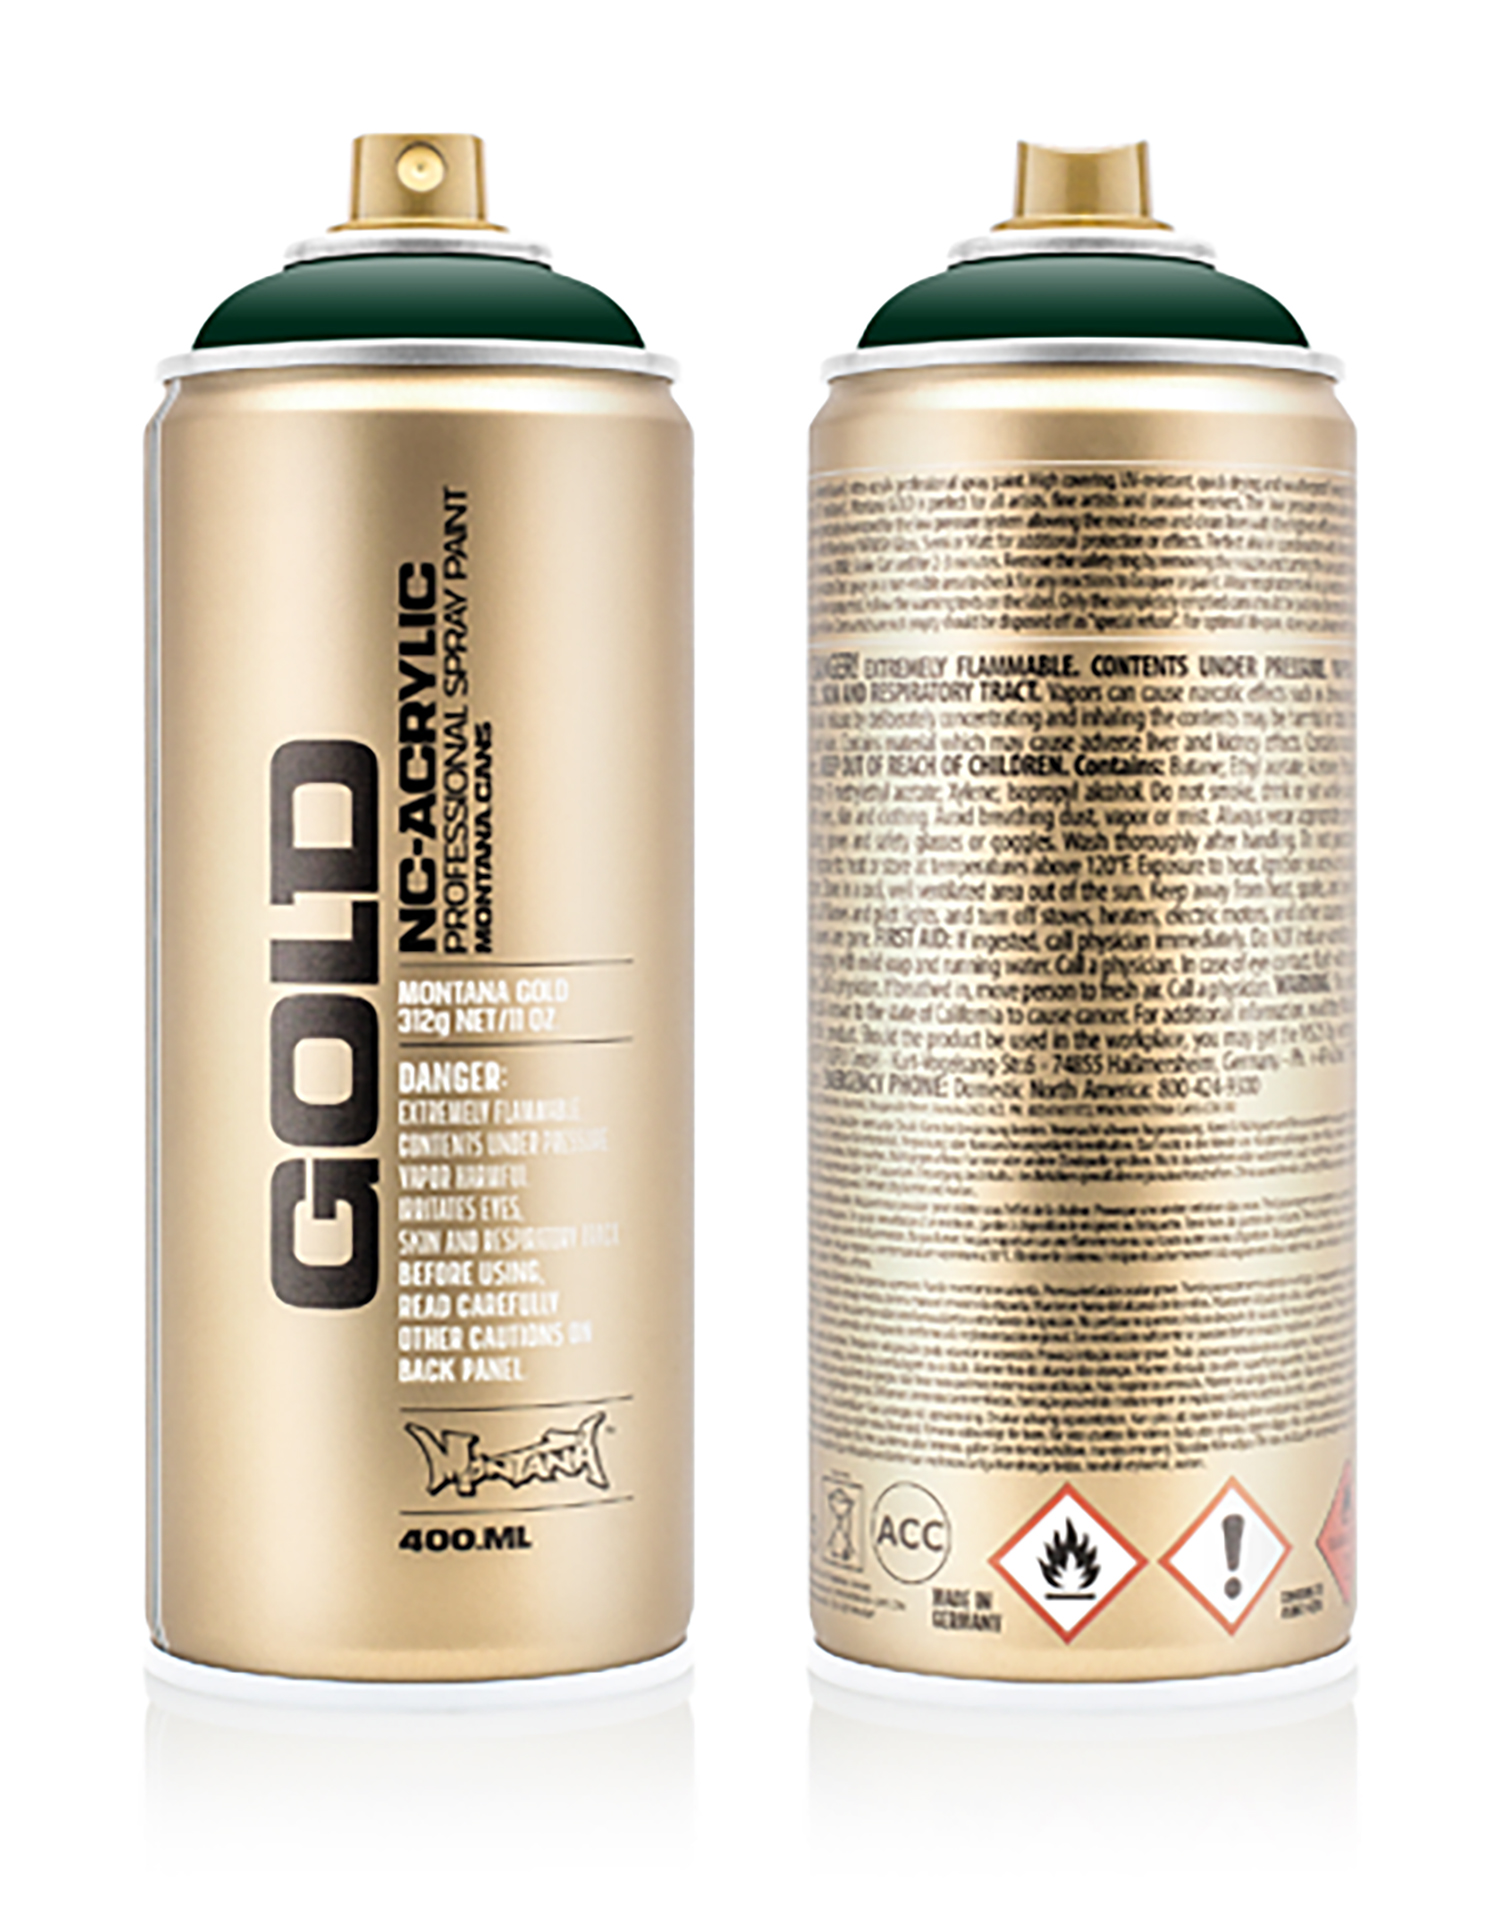 MONTANA-GOLD-SPRAY-400ML-G-6090